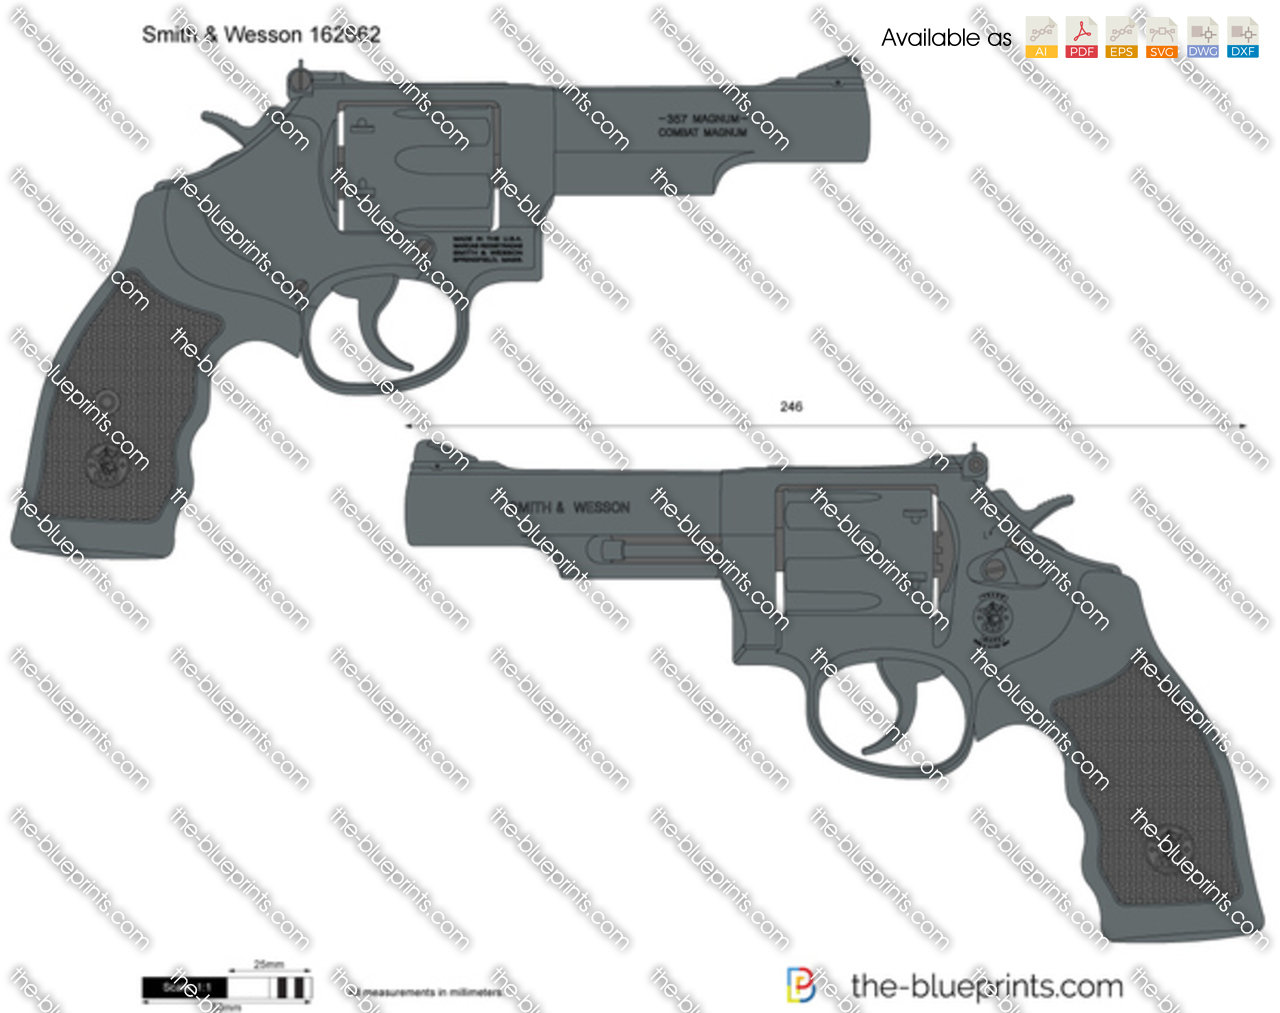 Smith & Wesson 162662